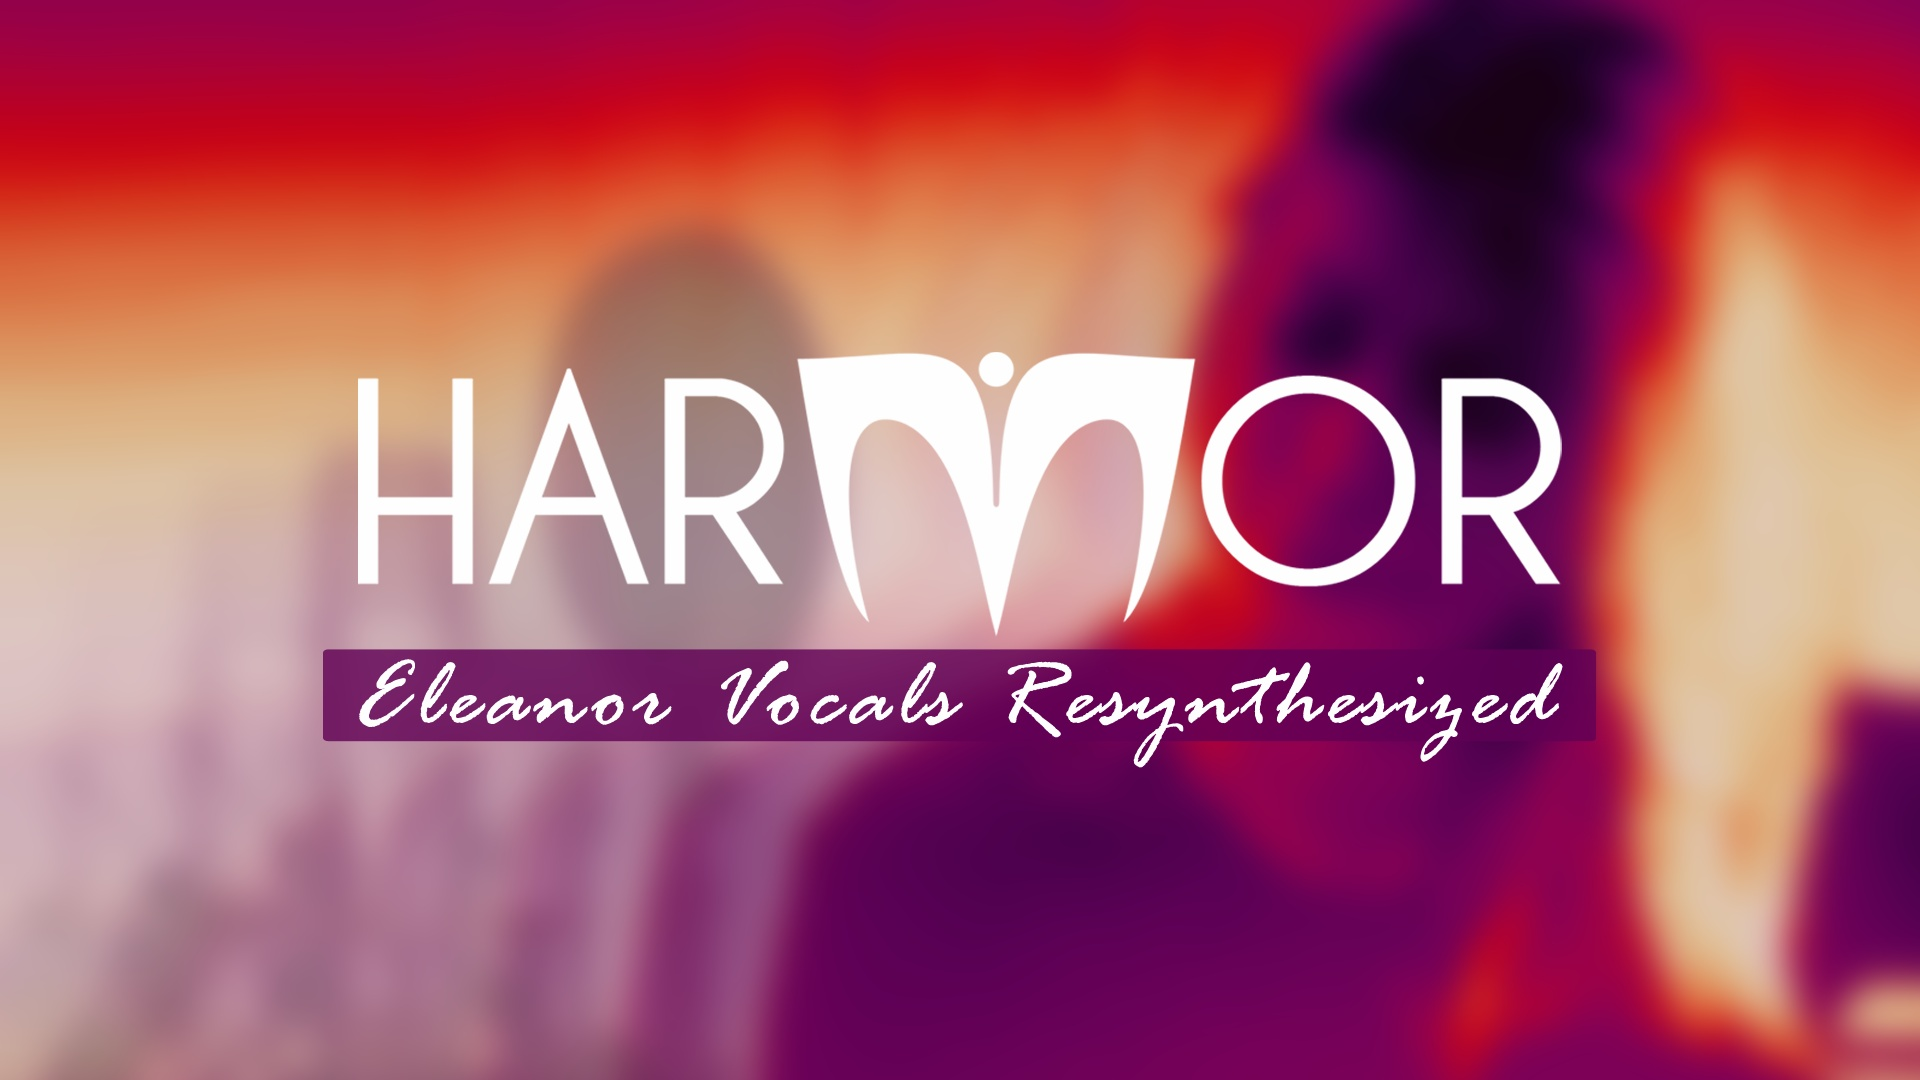 Harmor | Eleanor Vocals